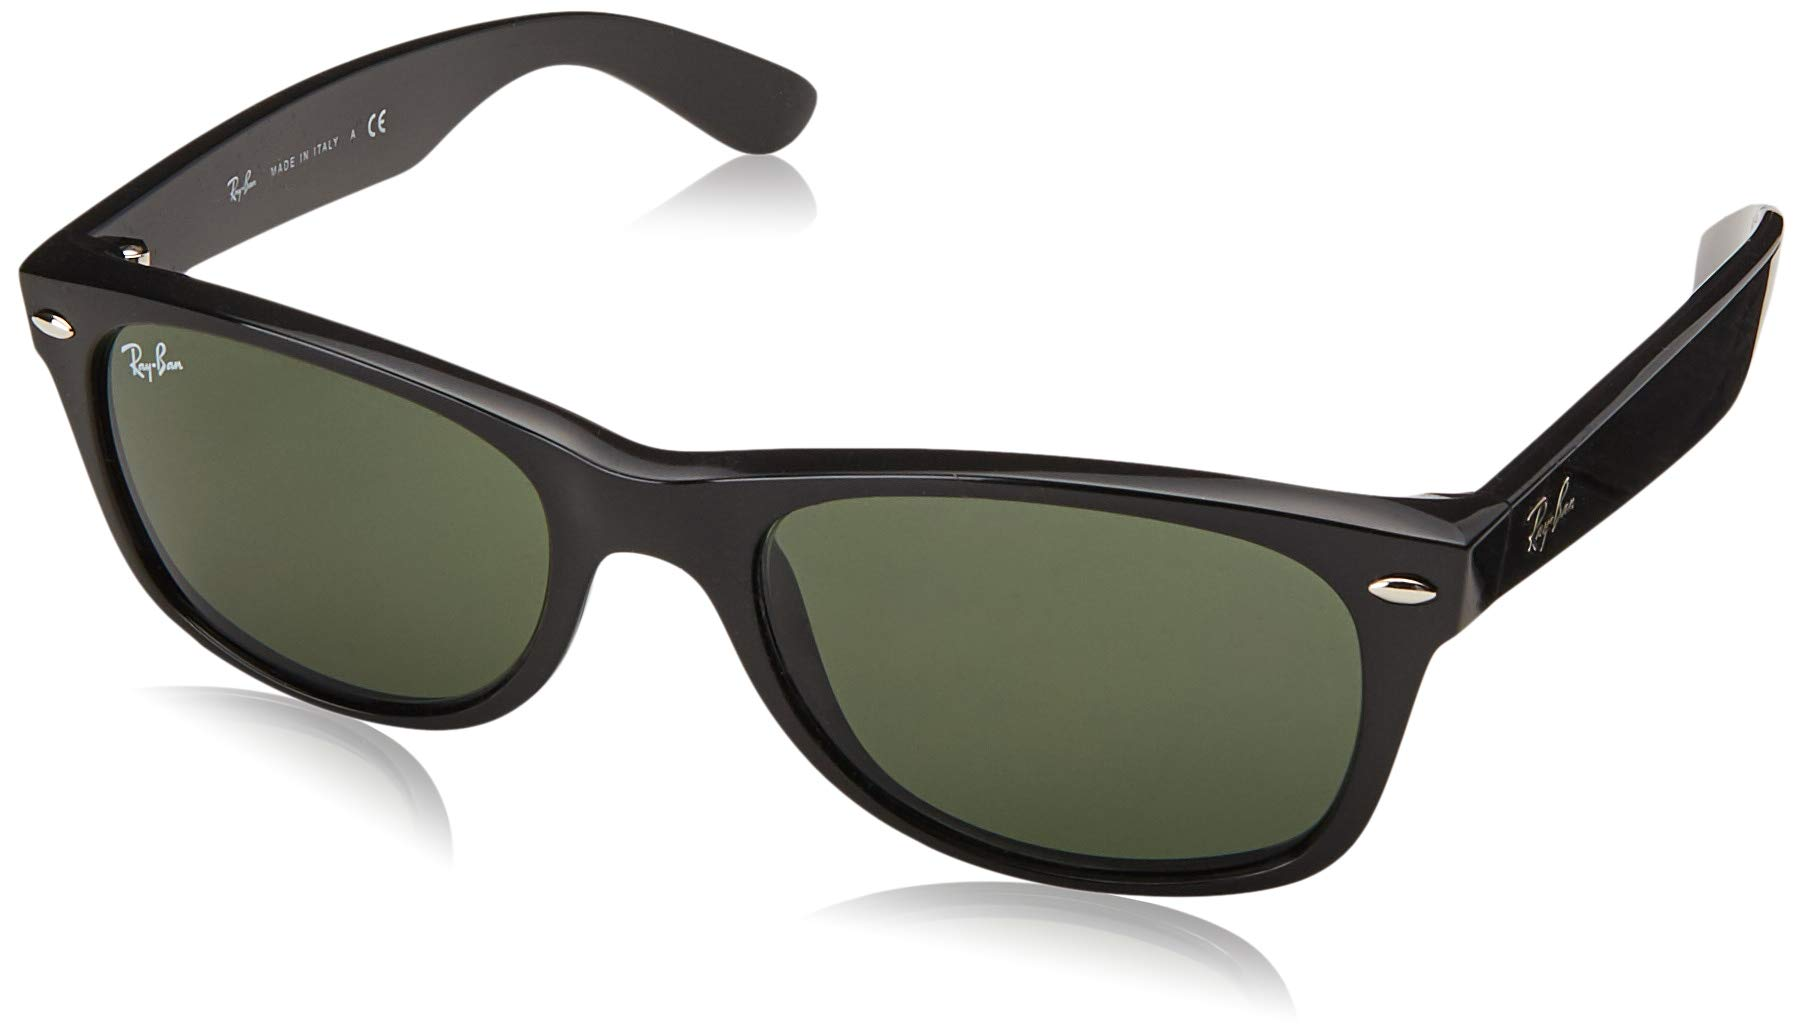 RAY-BAN RB2132 New Wayfarer Polarized Sunglasses, Black/Polarized Green, 55 mm by RAY-BAN